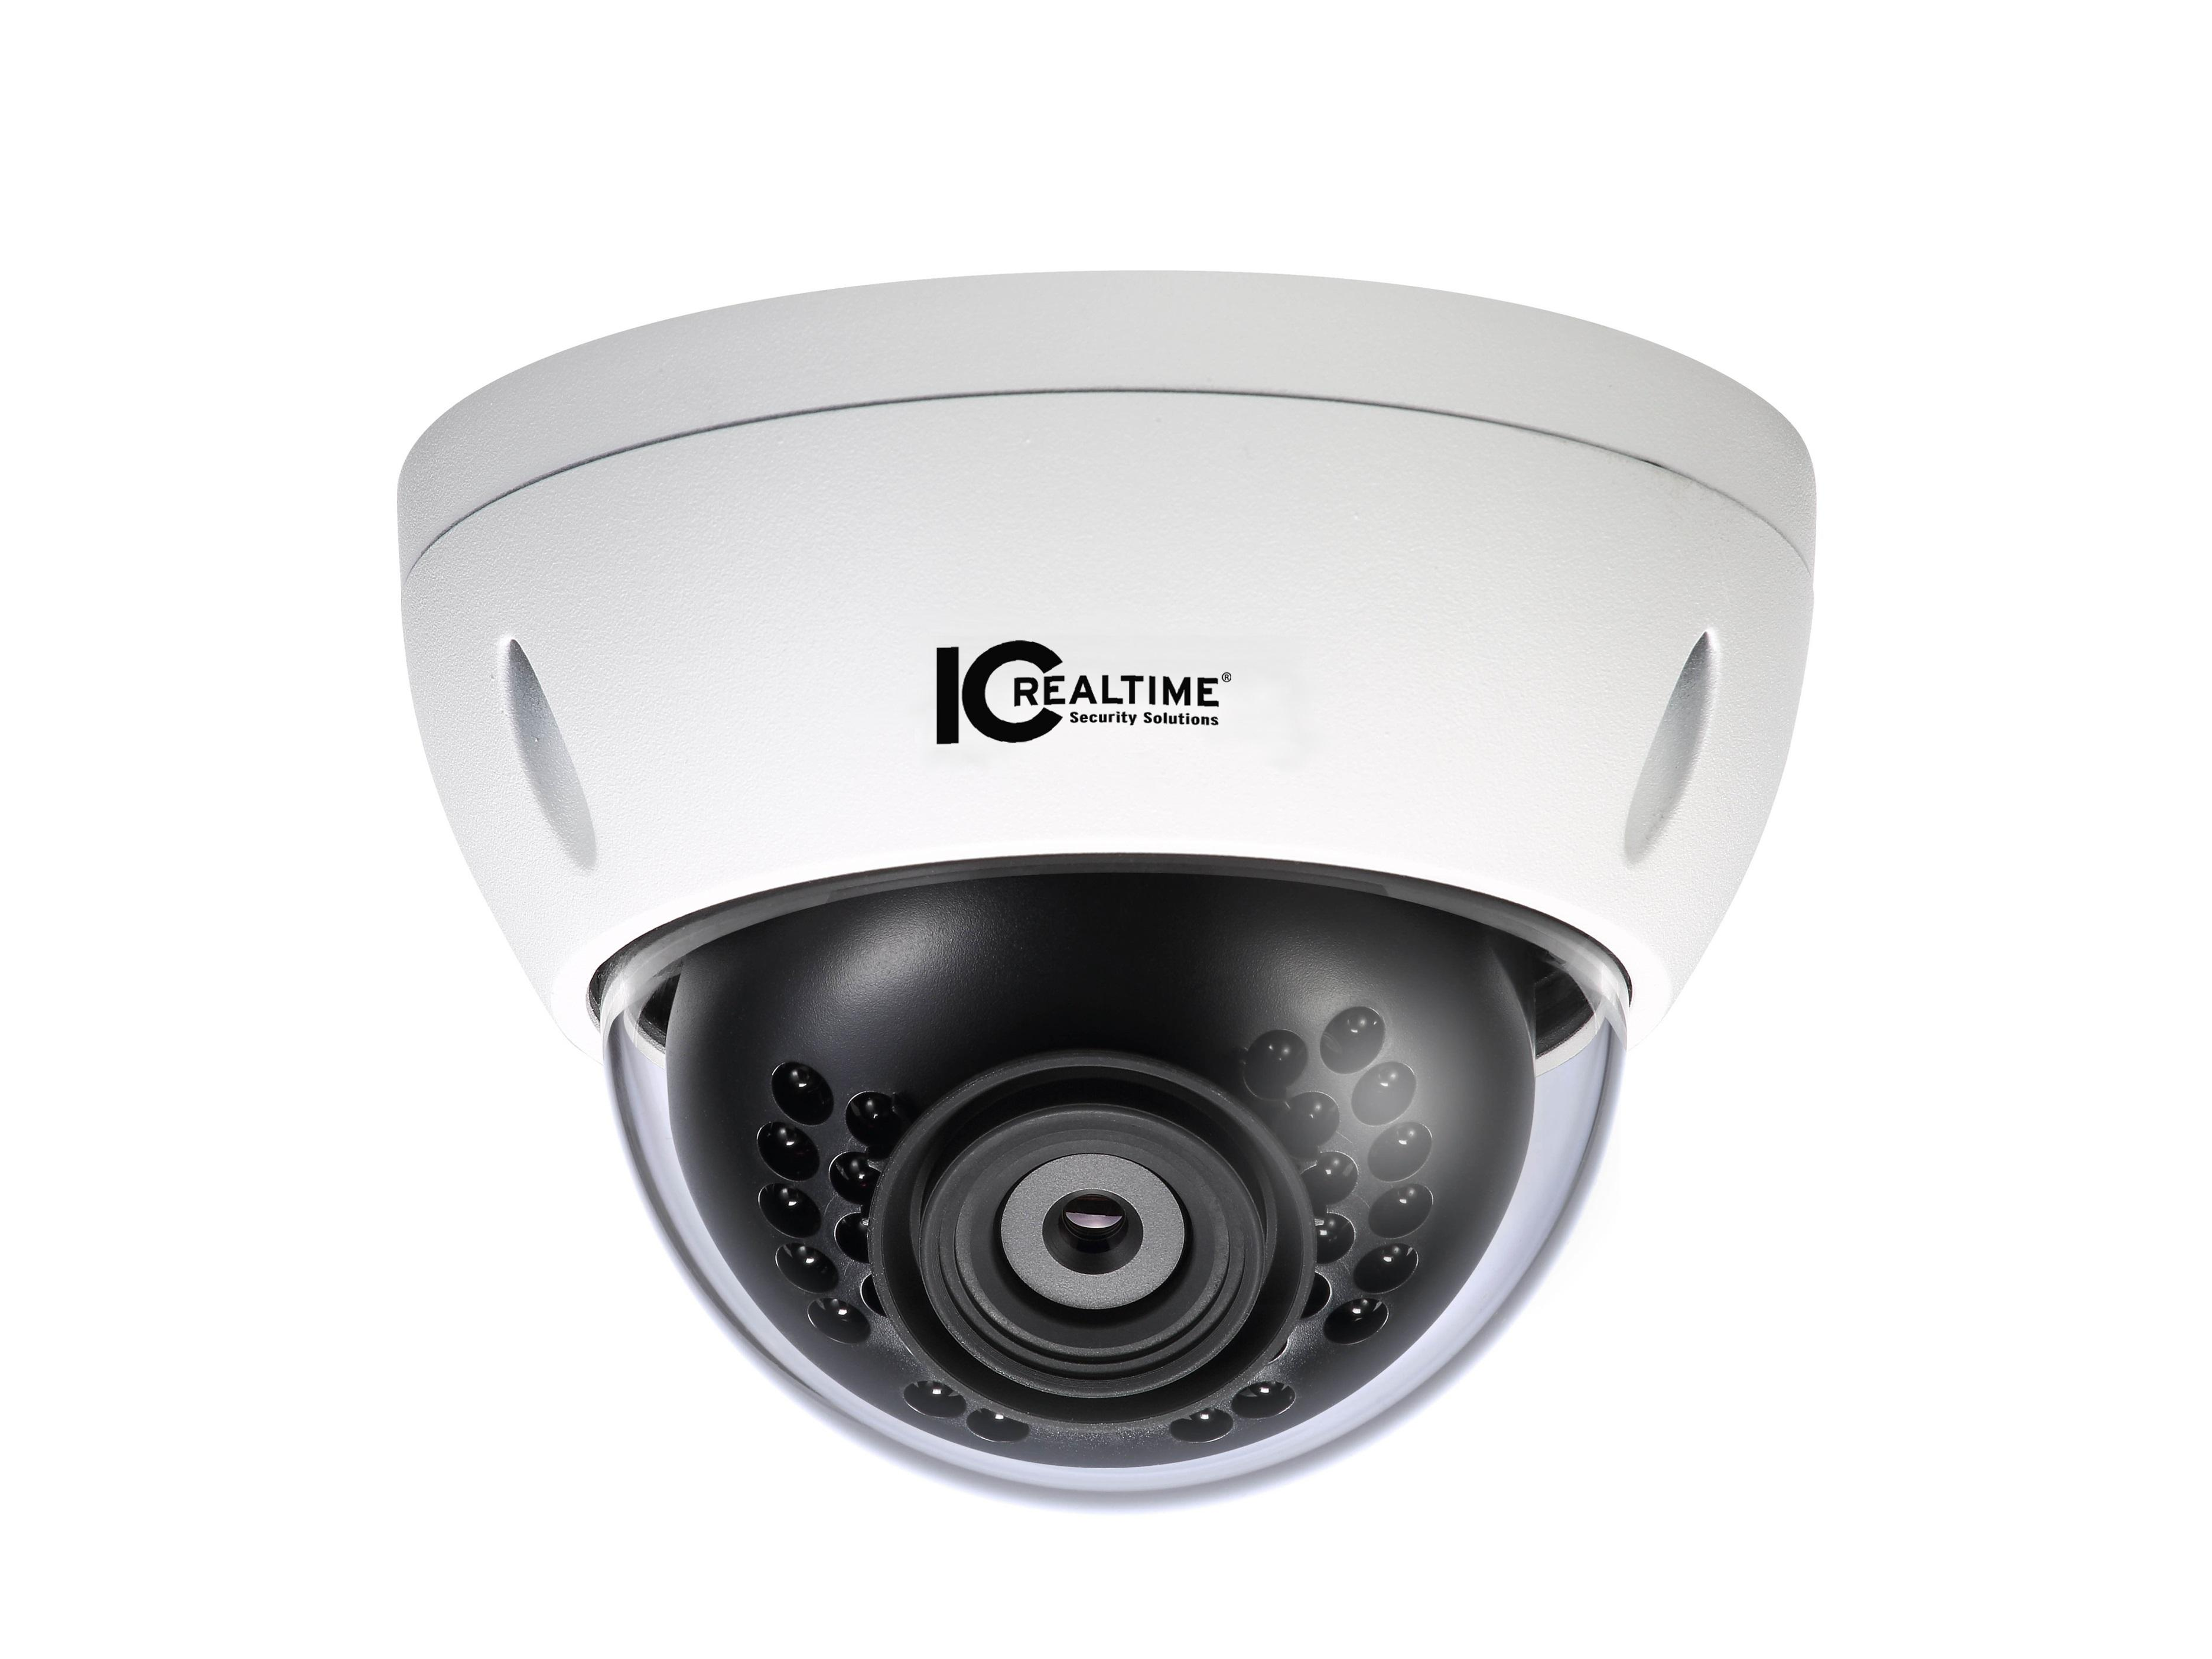 ICIP-DW212 2 MP Indoor/Outdoor Vandal Mini WiFi Network Dome Camera by ICRealtime